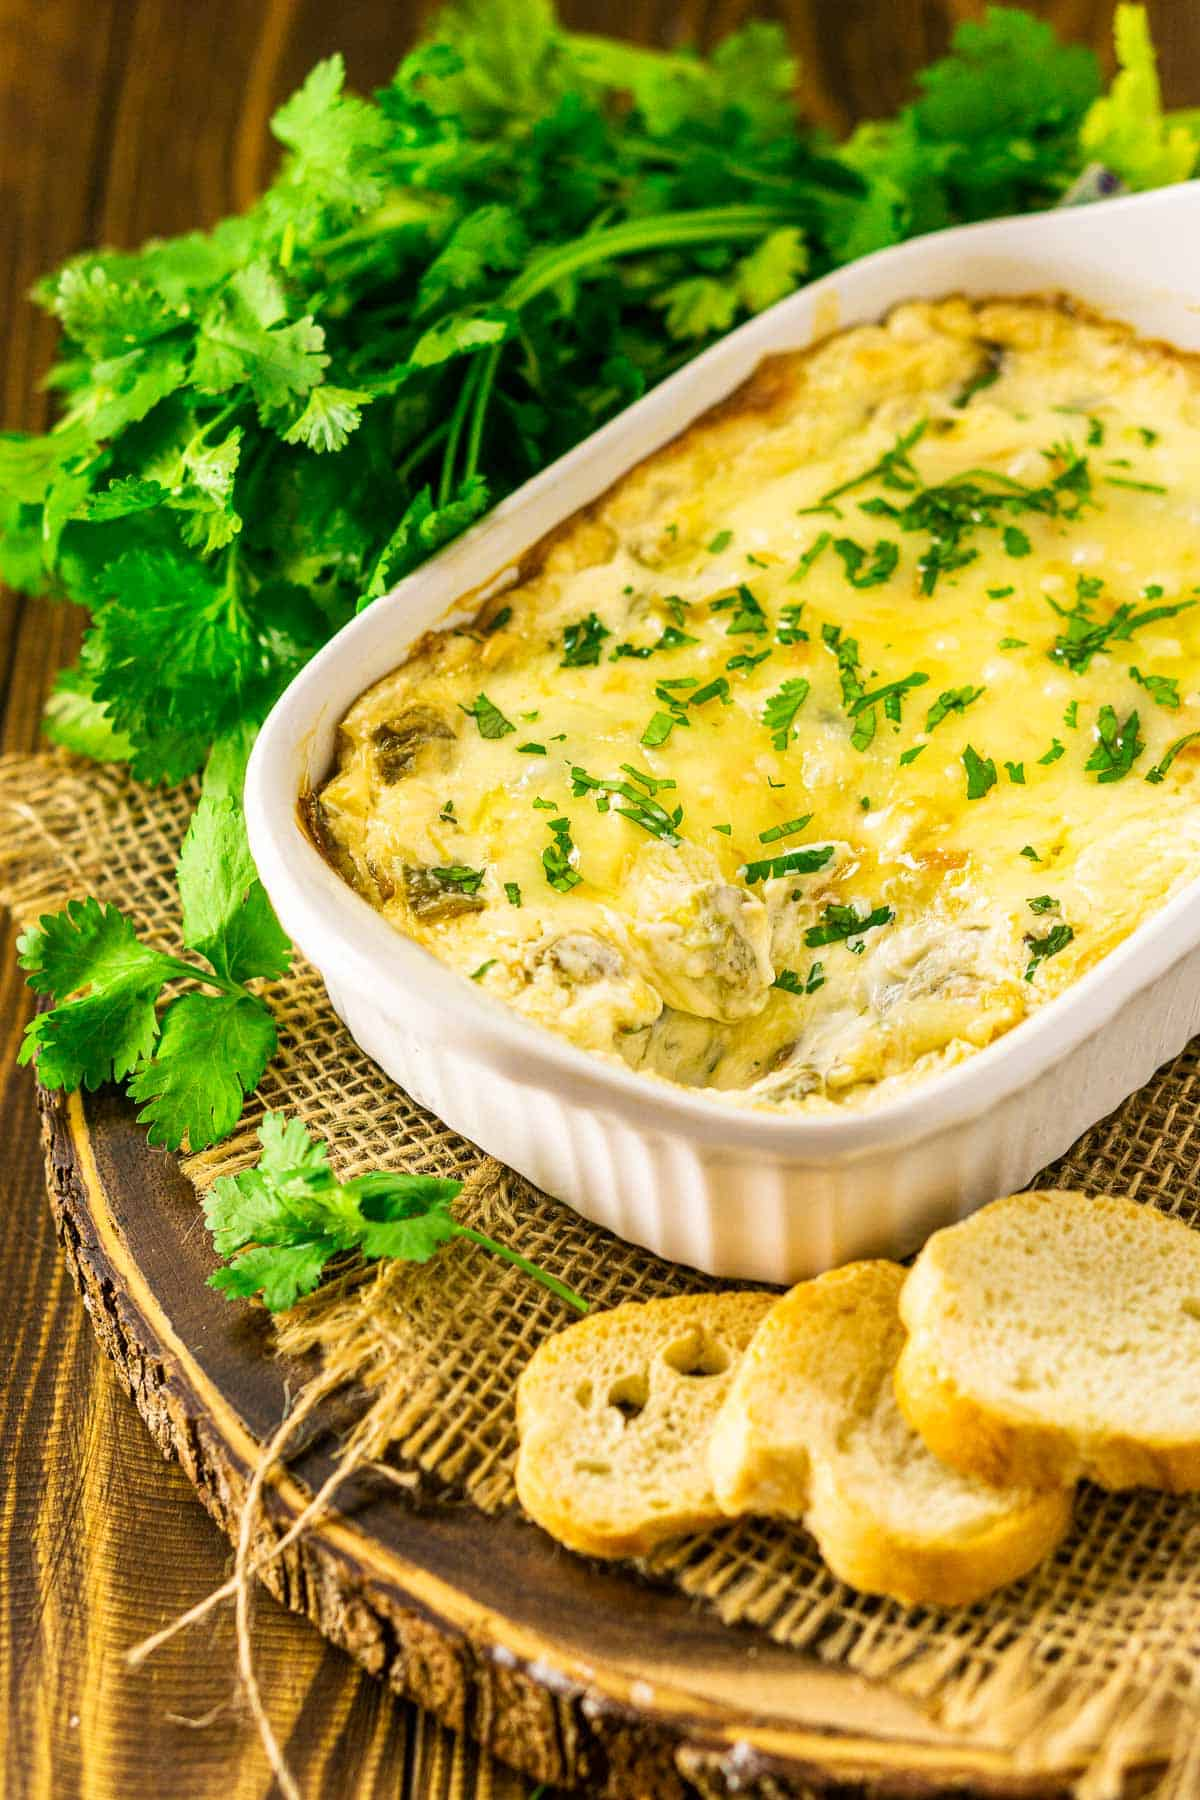 The green chile dip after bread dipped into a corner of the dish.